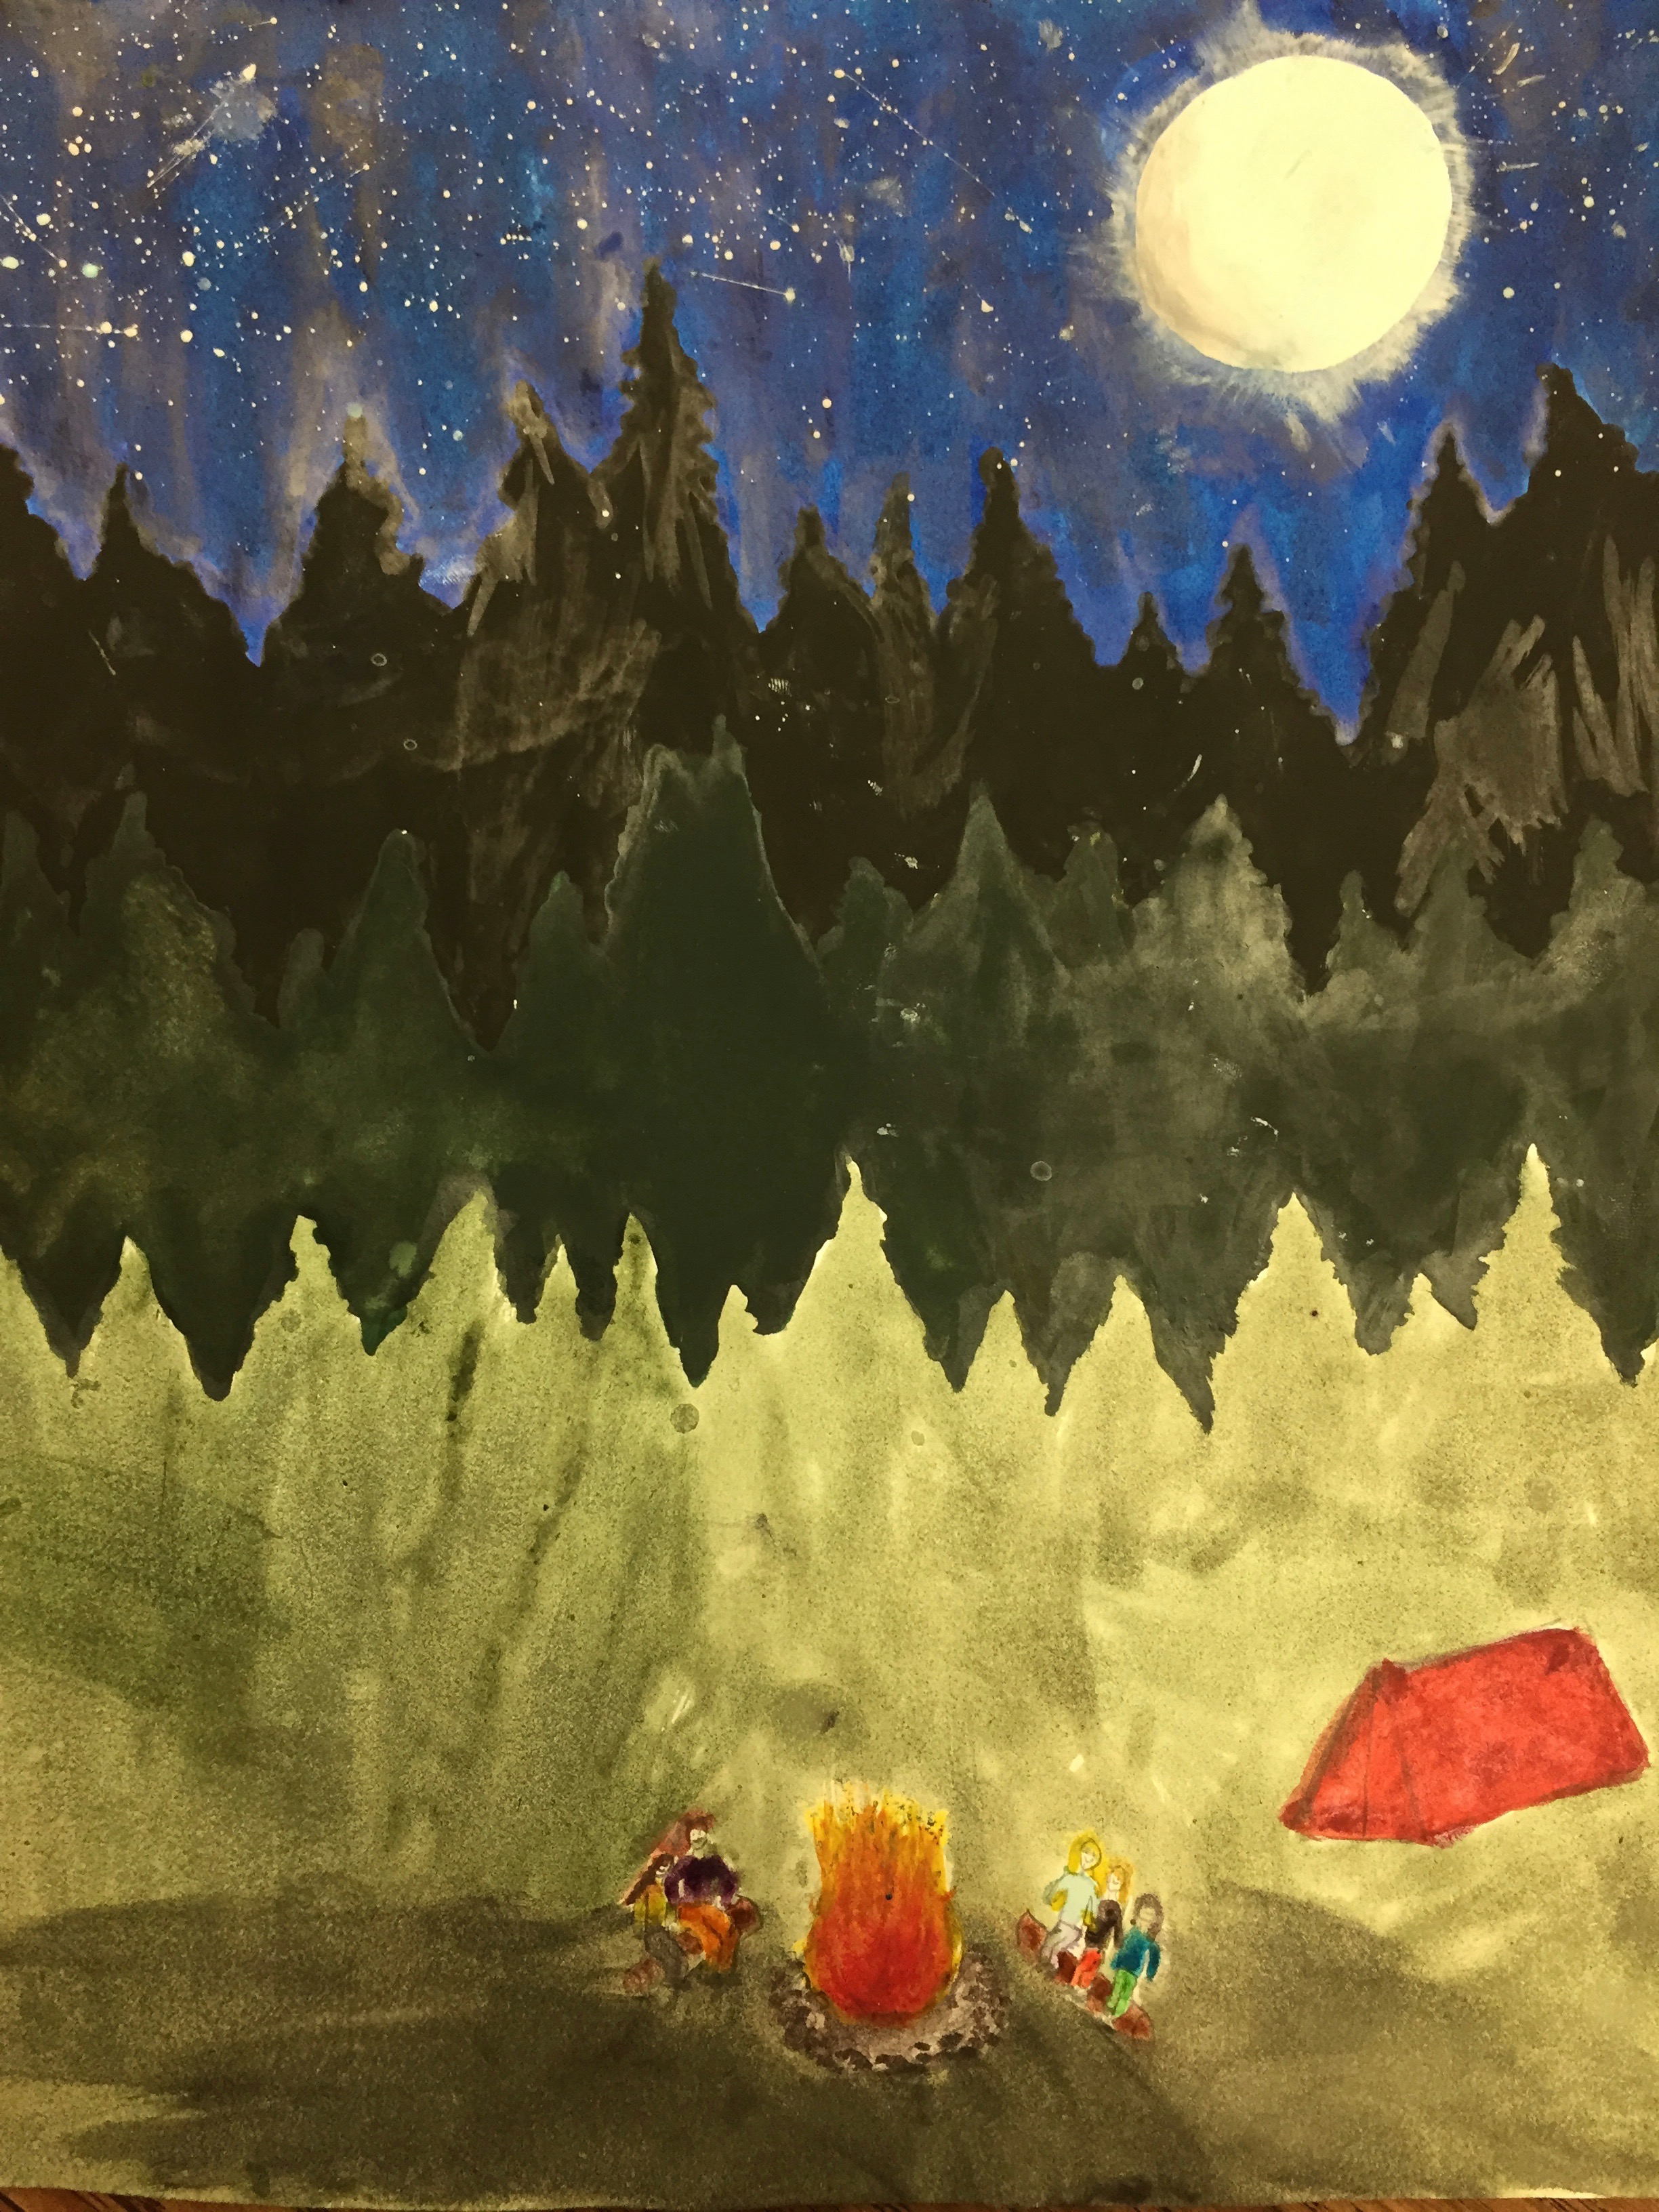 Student painting of campfire and trees in the moonlight